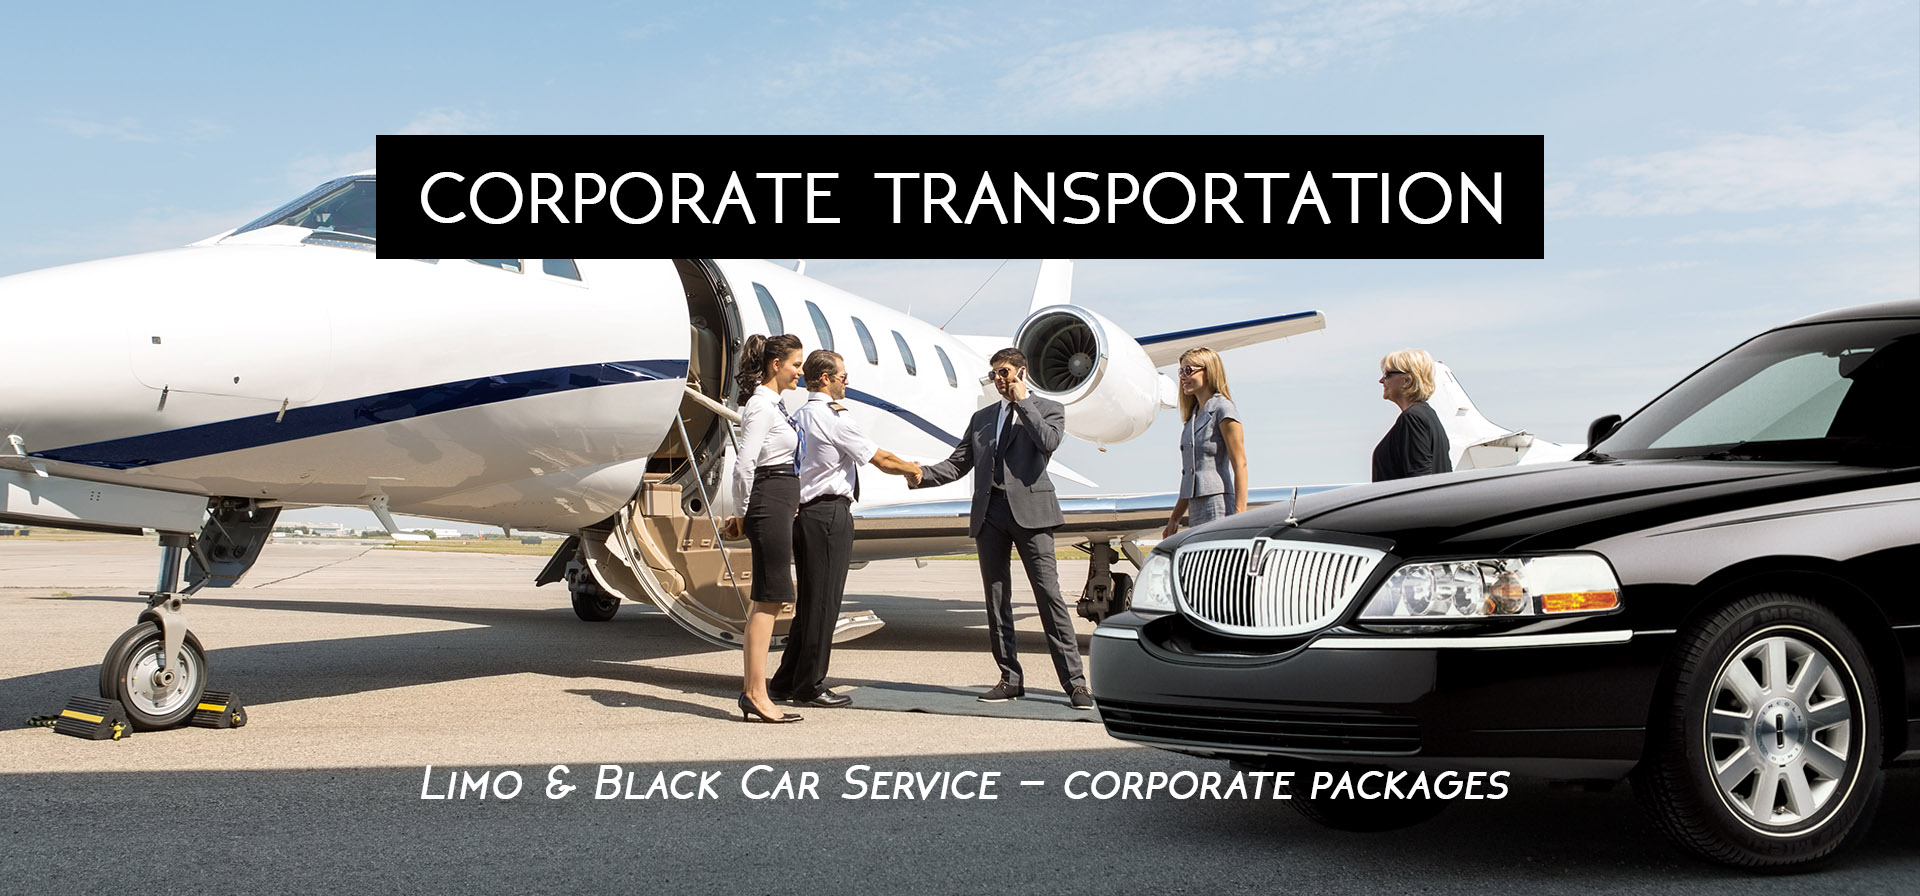 corporate-transportation-nj-airport-bg